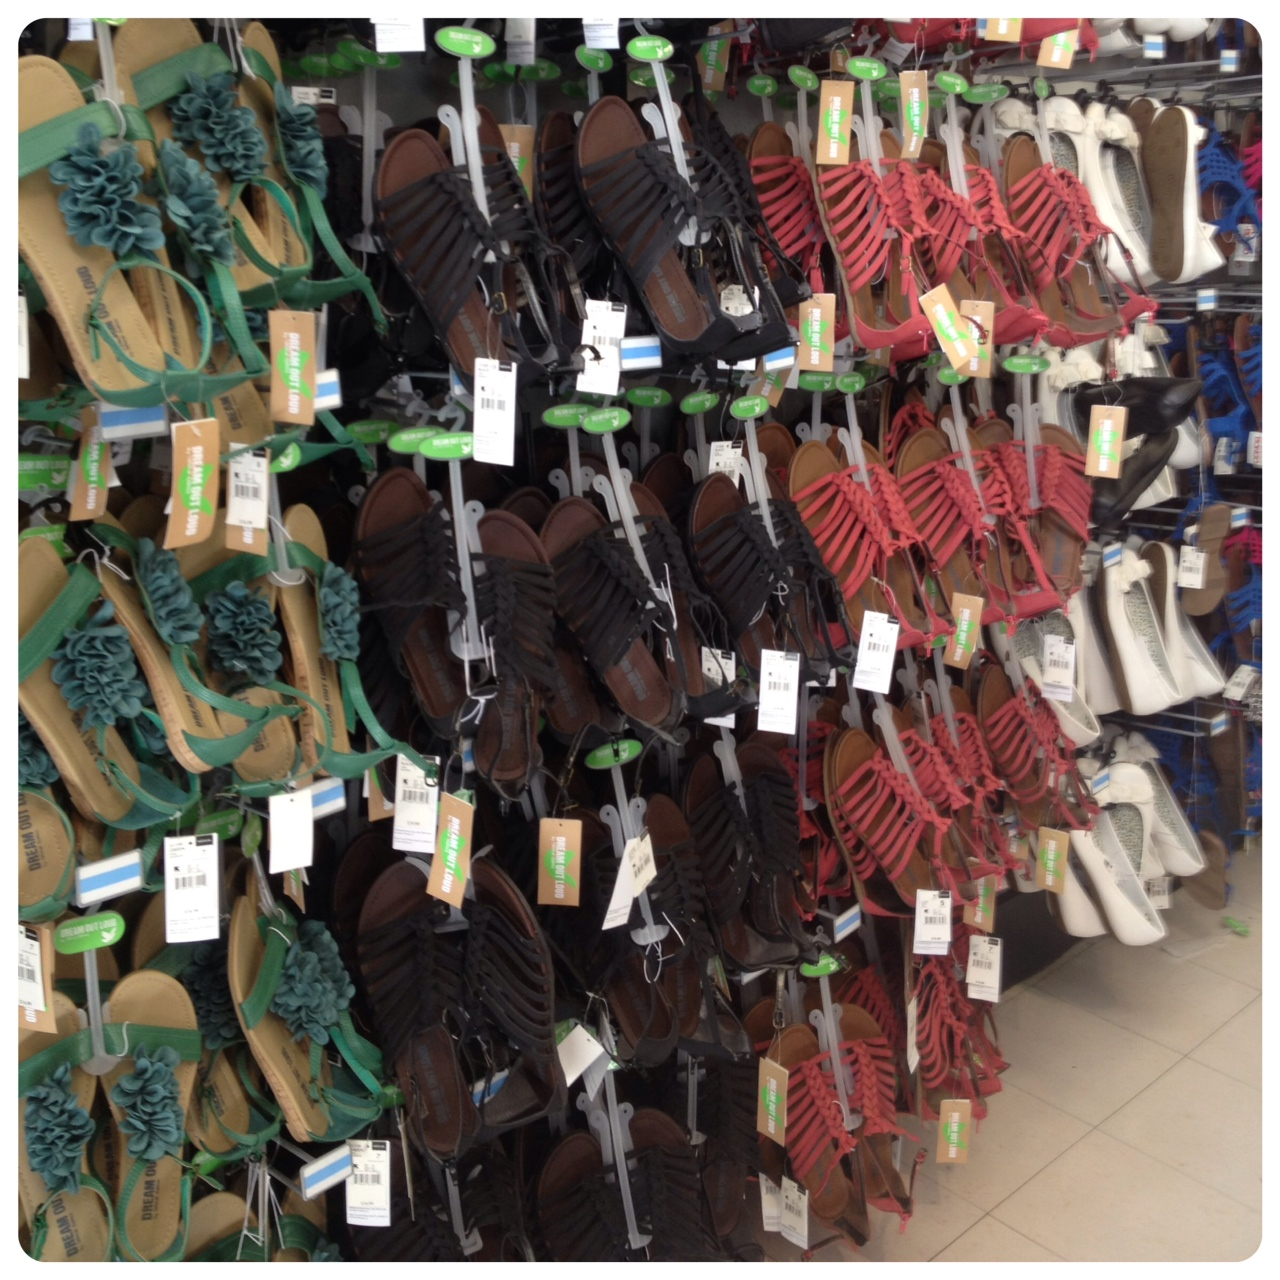 Kmart Sales This Weekend: Fashion Herald: 34th Street Weekend Sale Picks: Shoes